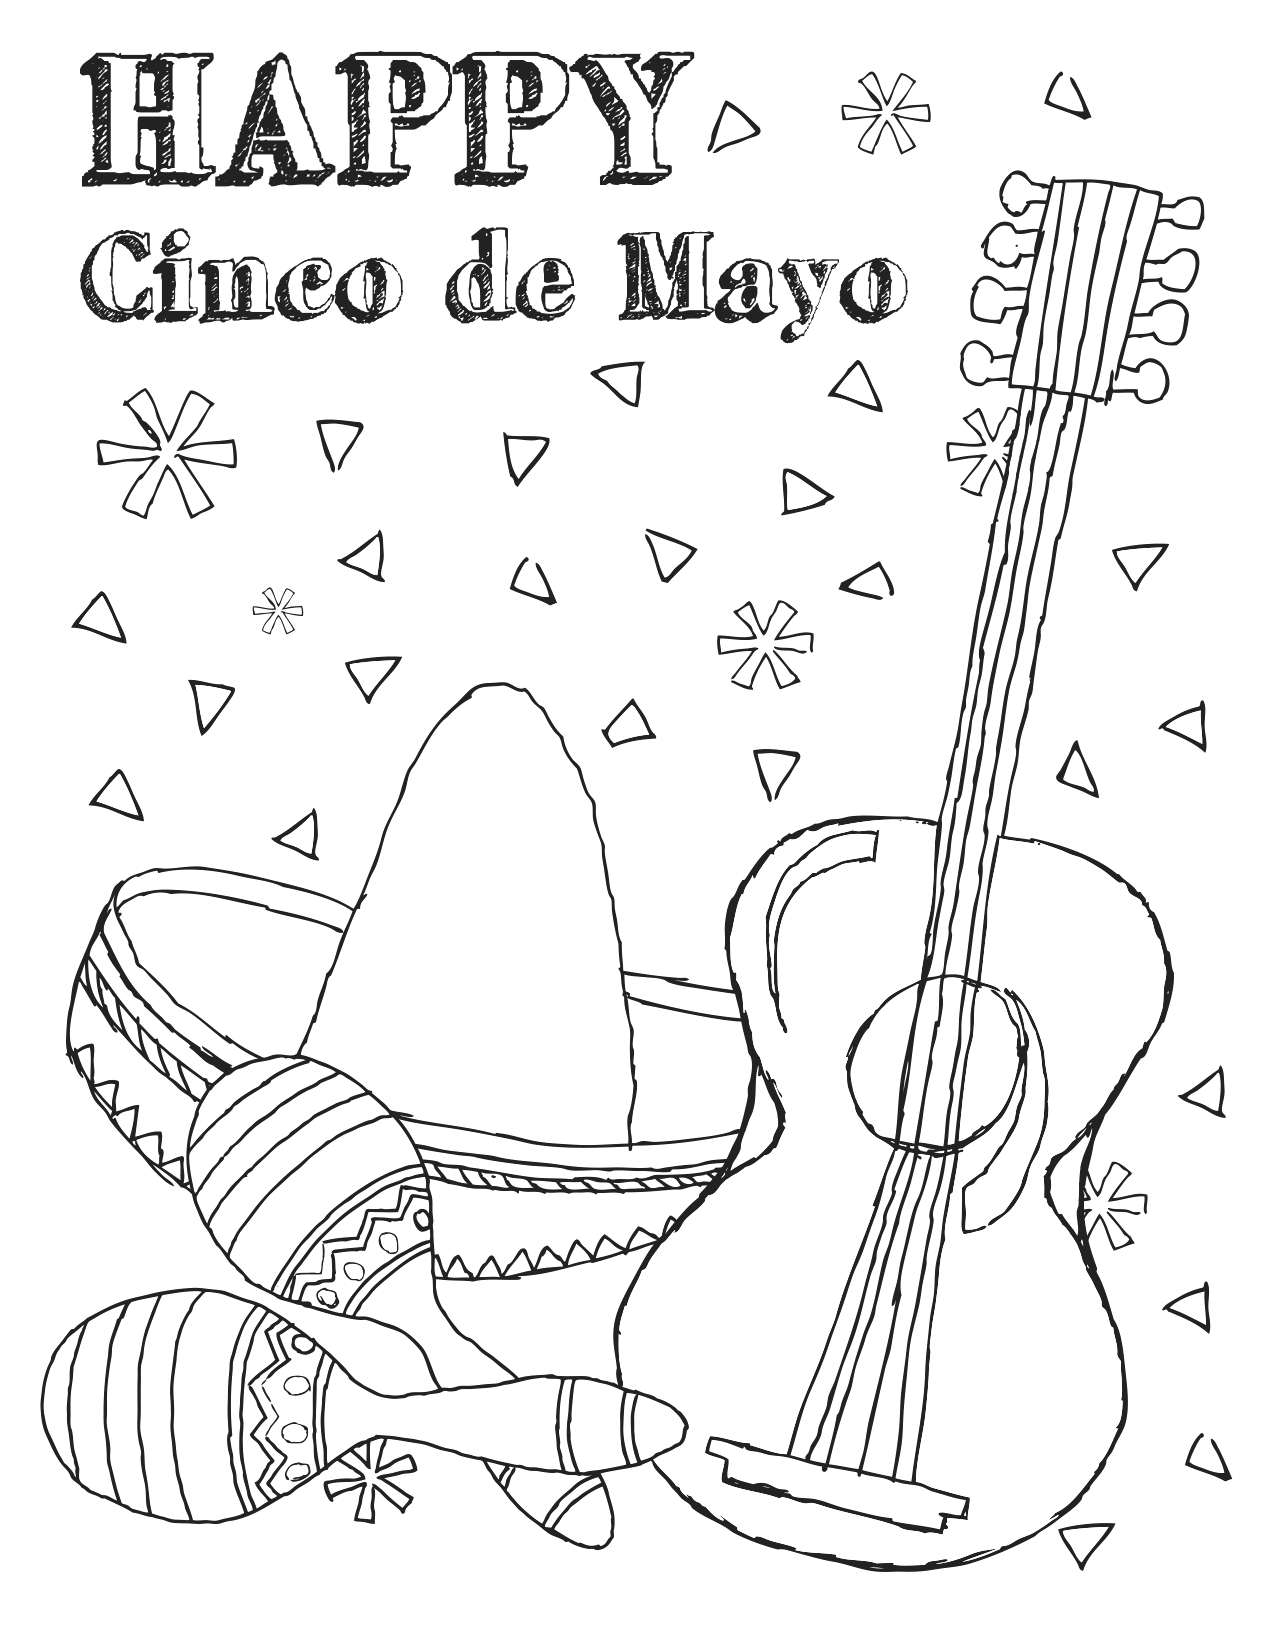 Free Cinco De Mayo Coloring Pages to Print Free Printable Cinco De Mayo Coloring Pages for Kids